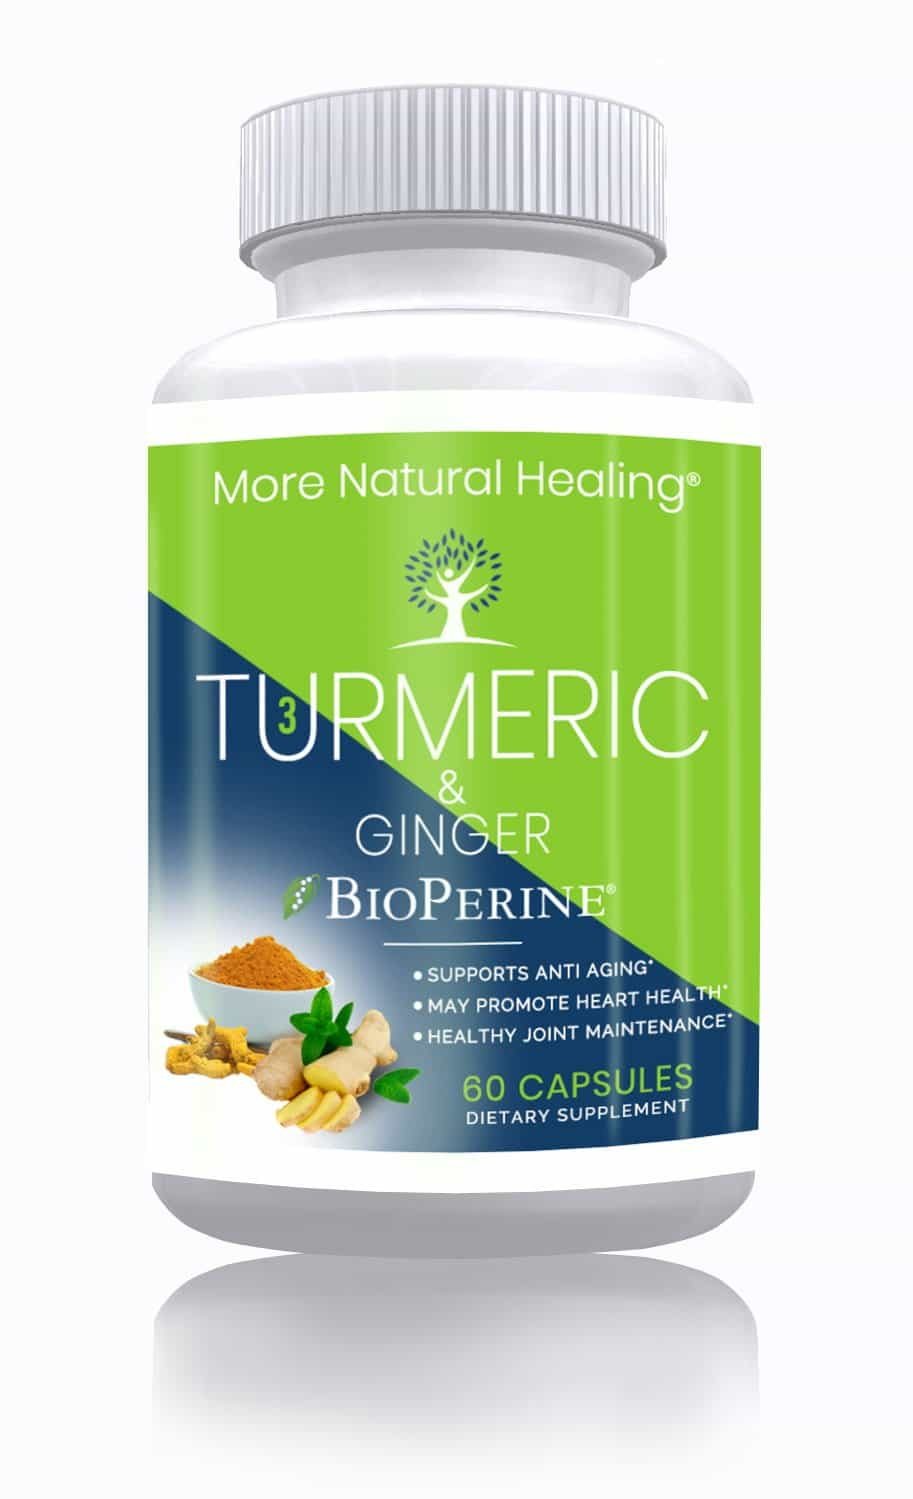 Turmeric and Ginger with BioPerine Supplement for Joint Health, Heart Health and Pain Relief - More Natural Healing